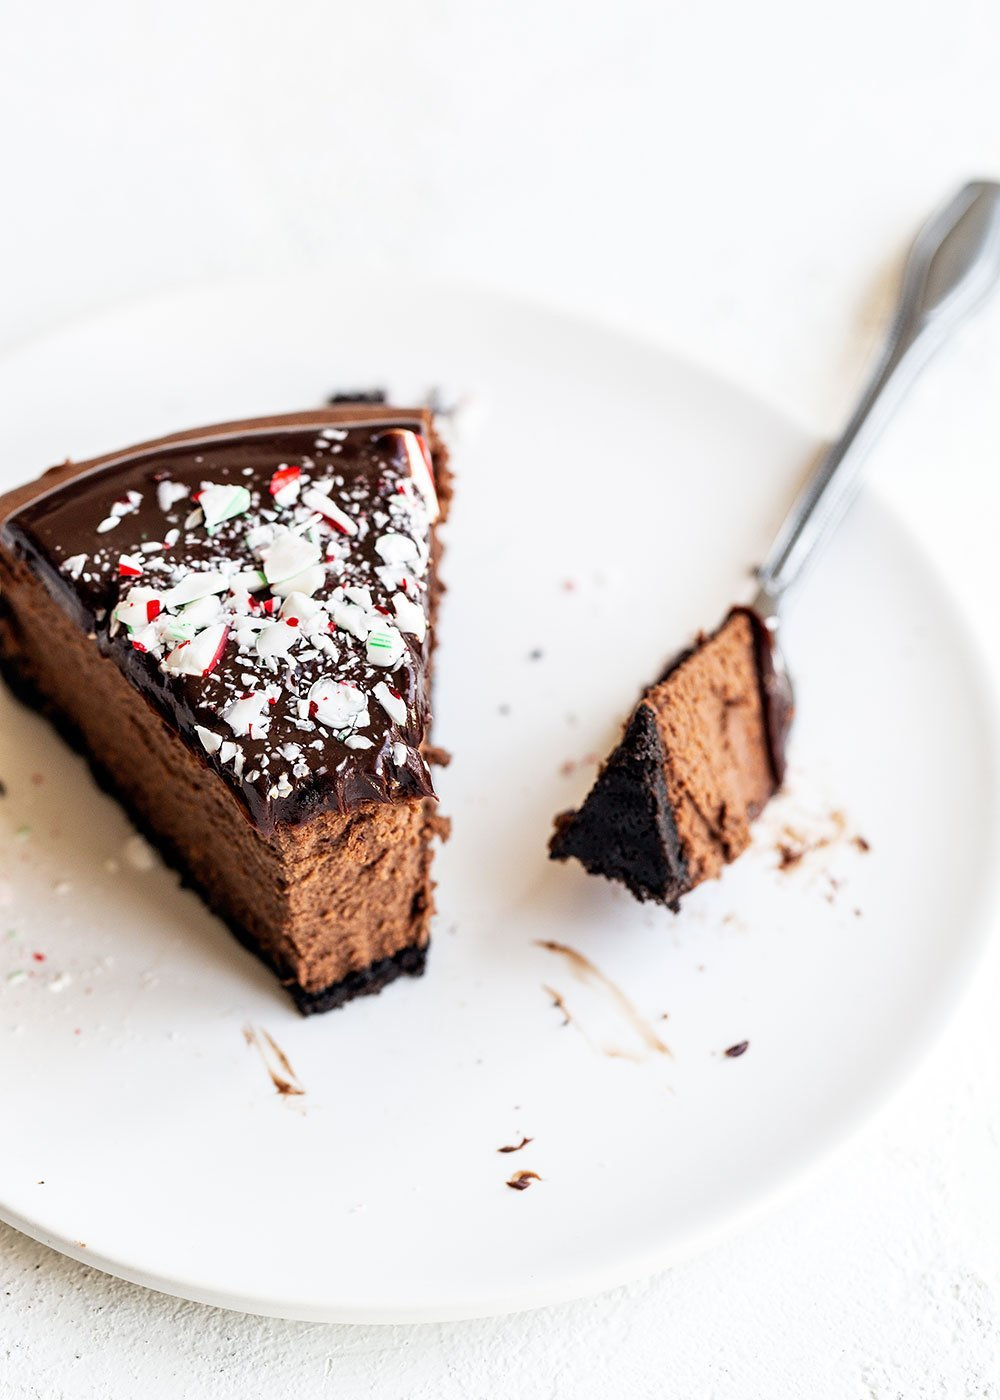 Slice of chocolate peppermint cheesecake with a bite removed